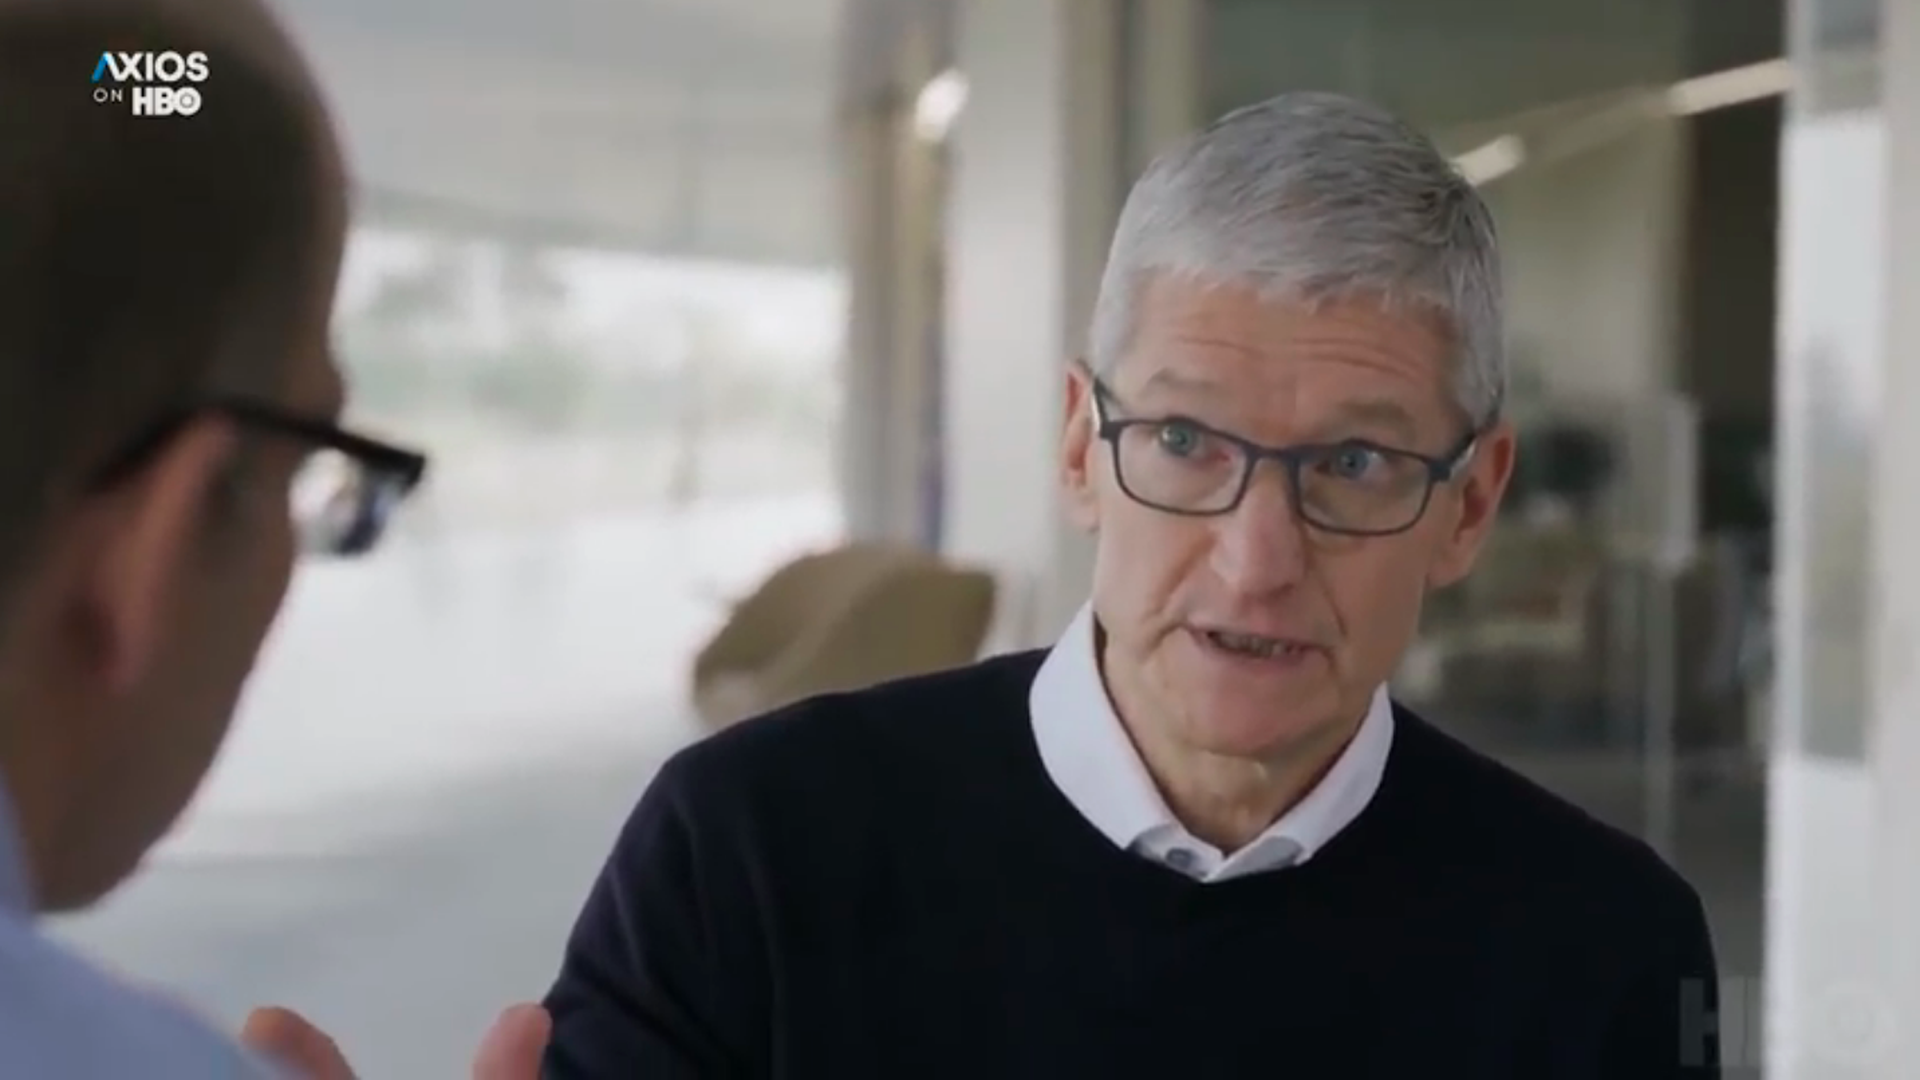 Apple CEO Tim Cook speaks to Axios' Mike Allen and Ina Fried